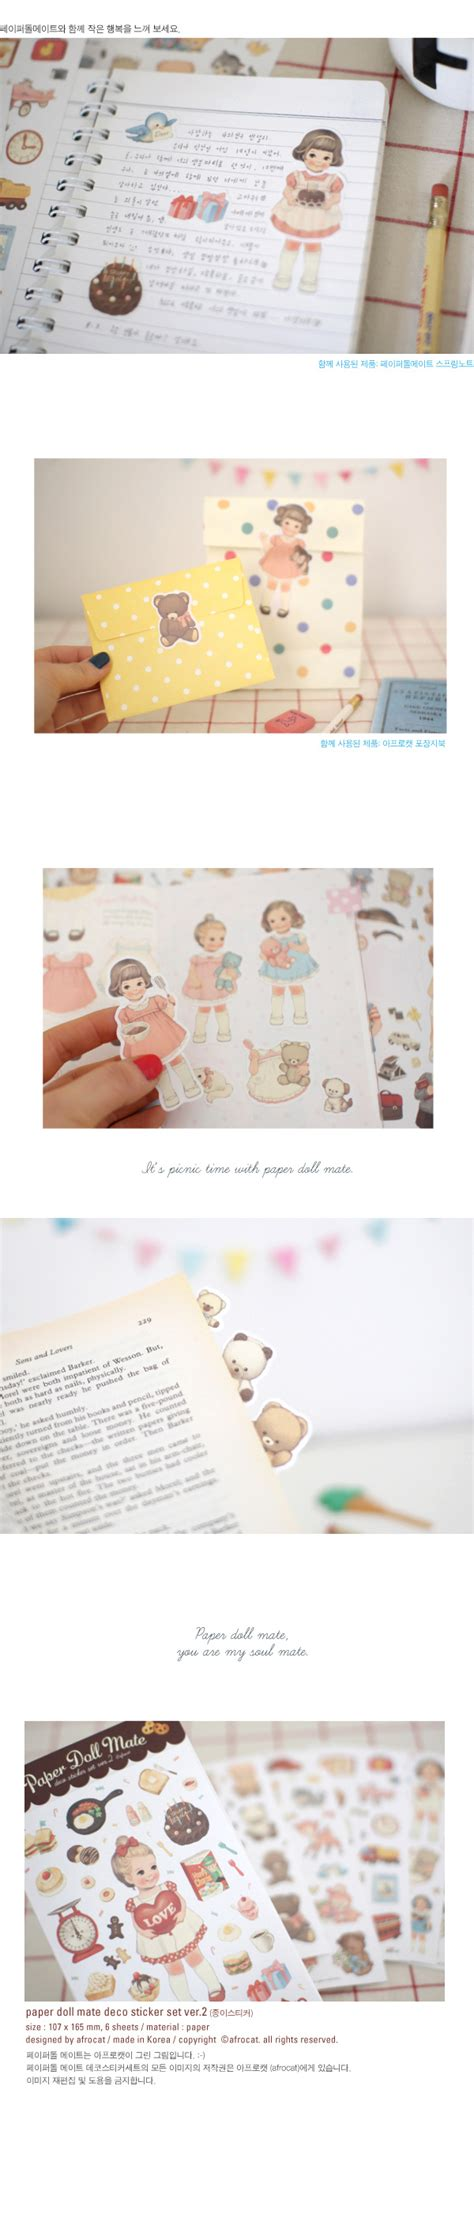 Paper Doll Mate Shopping Diary Deco Stickers Sticker Hiasan Buku paper doll mate sticker ver 2 diary book scrapbooking washi index decor ebay